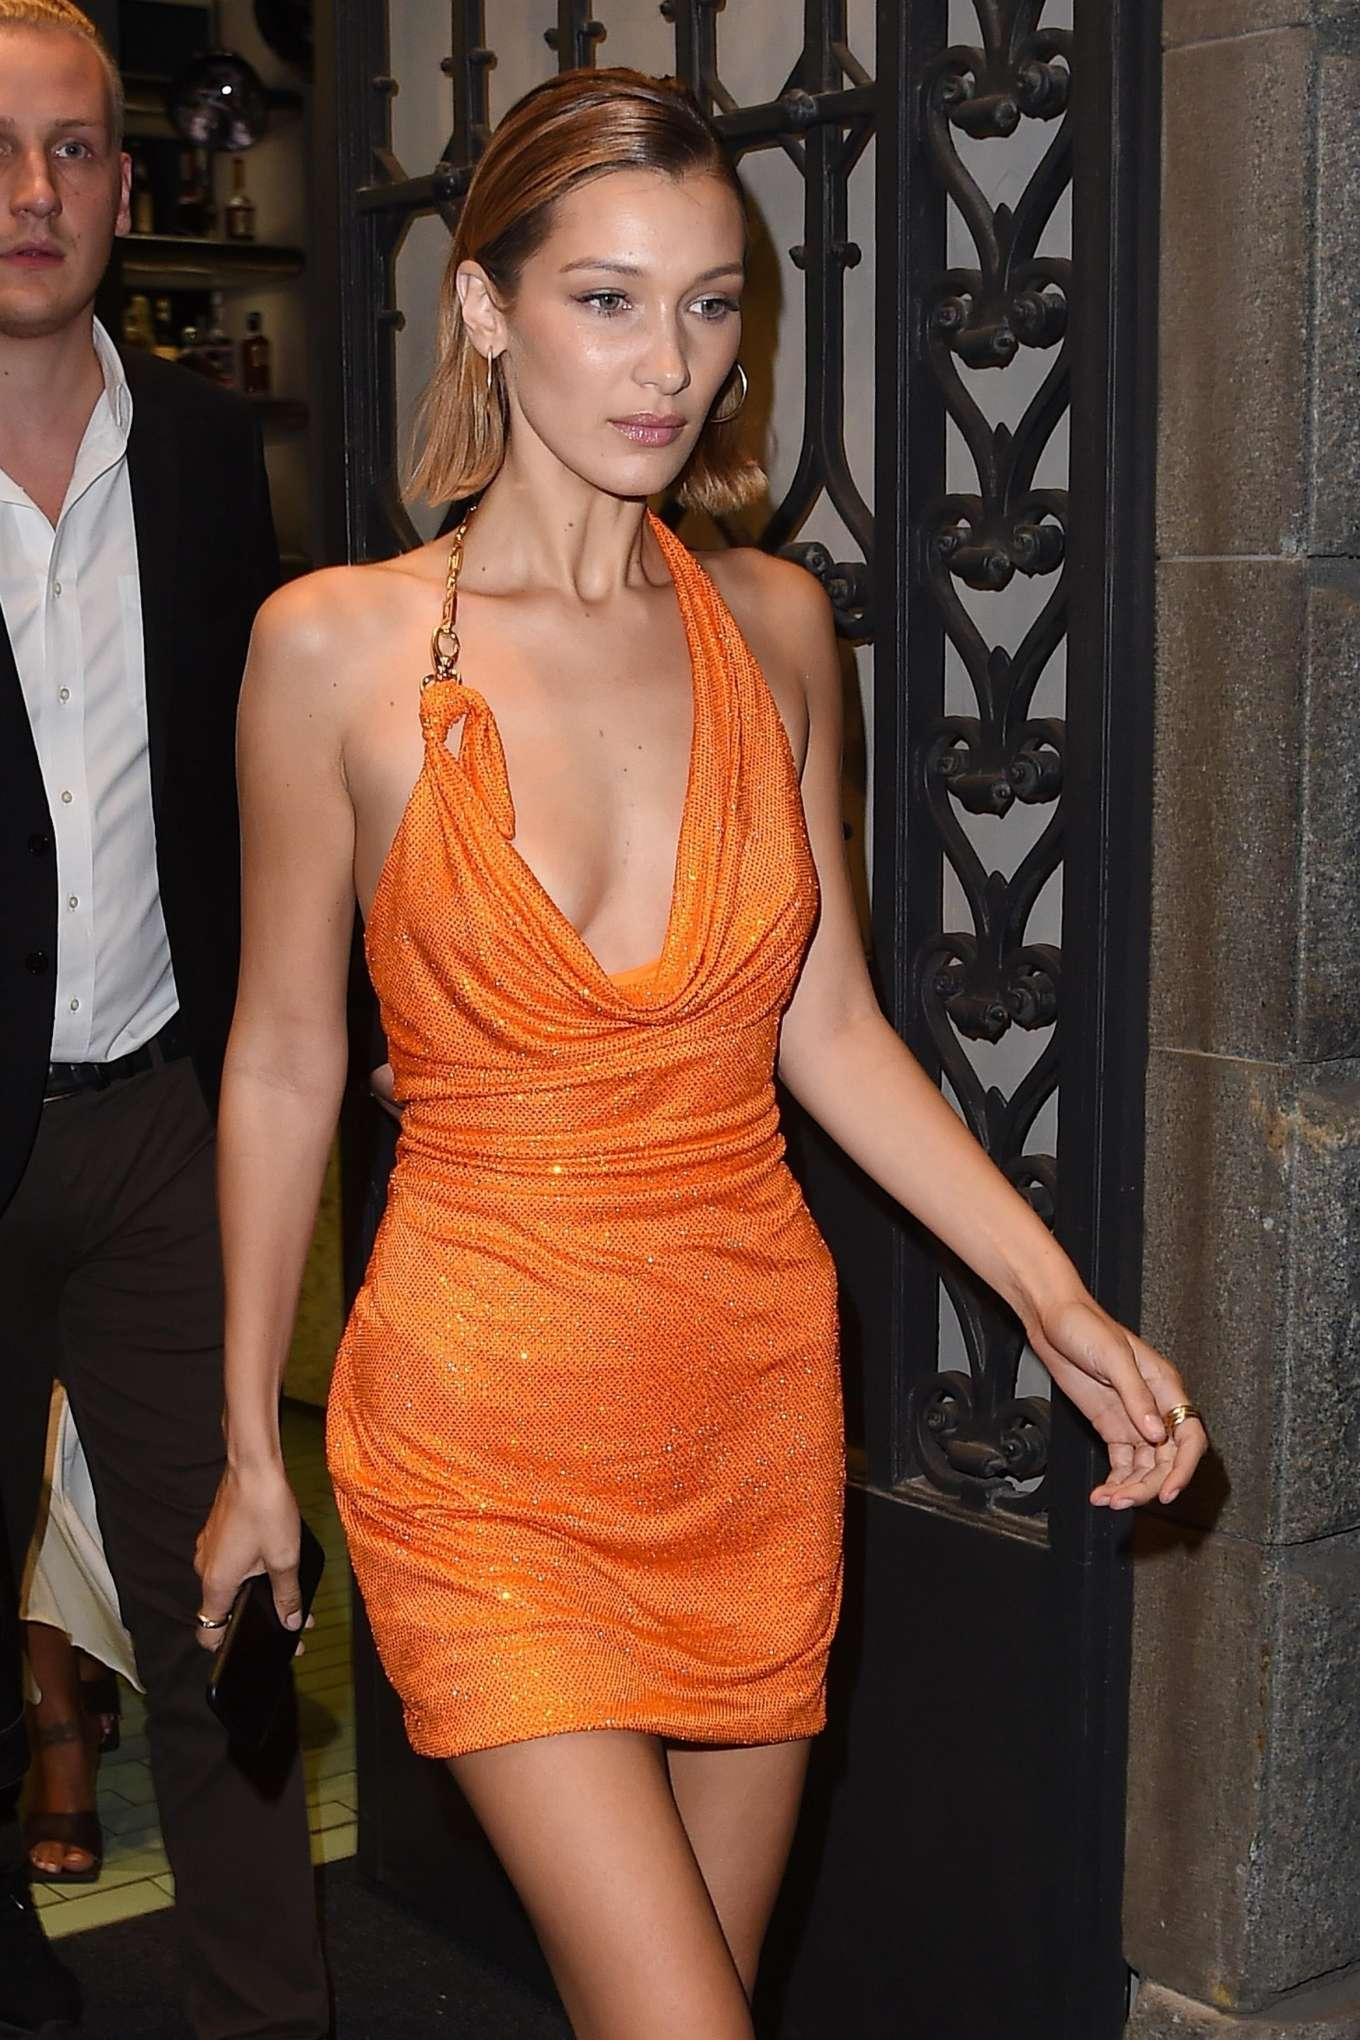 Bella Hadid in Orange Mini Dress at Versace Fashion Show After Party in Milan